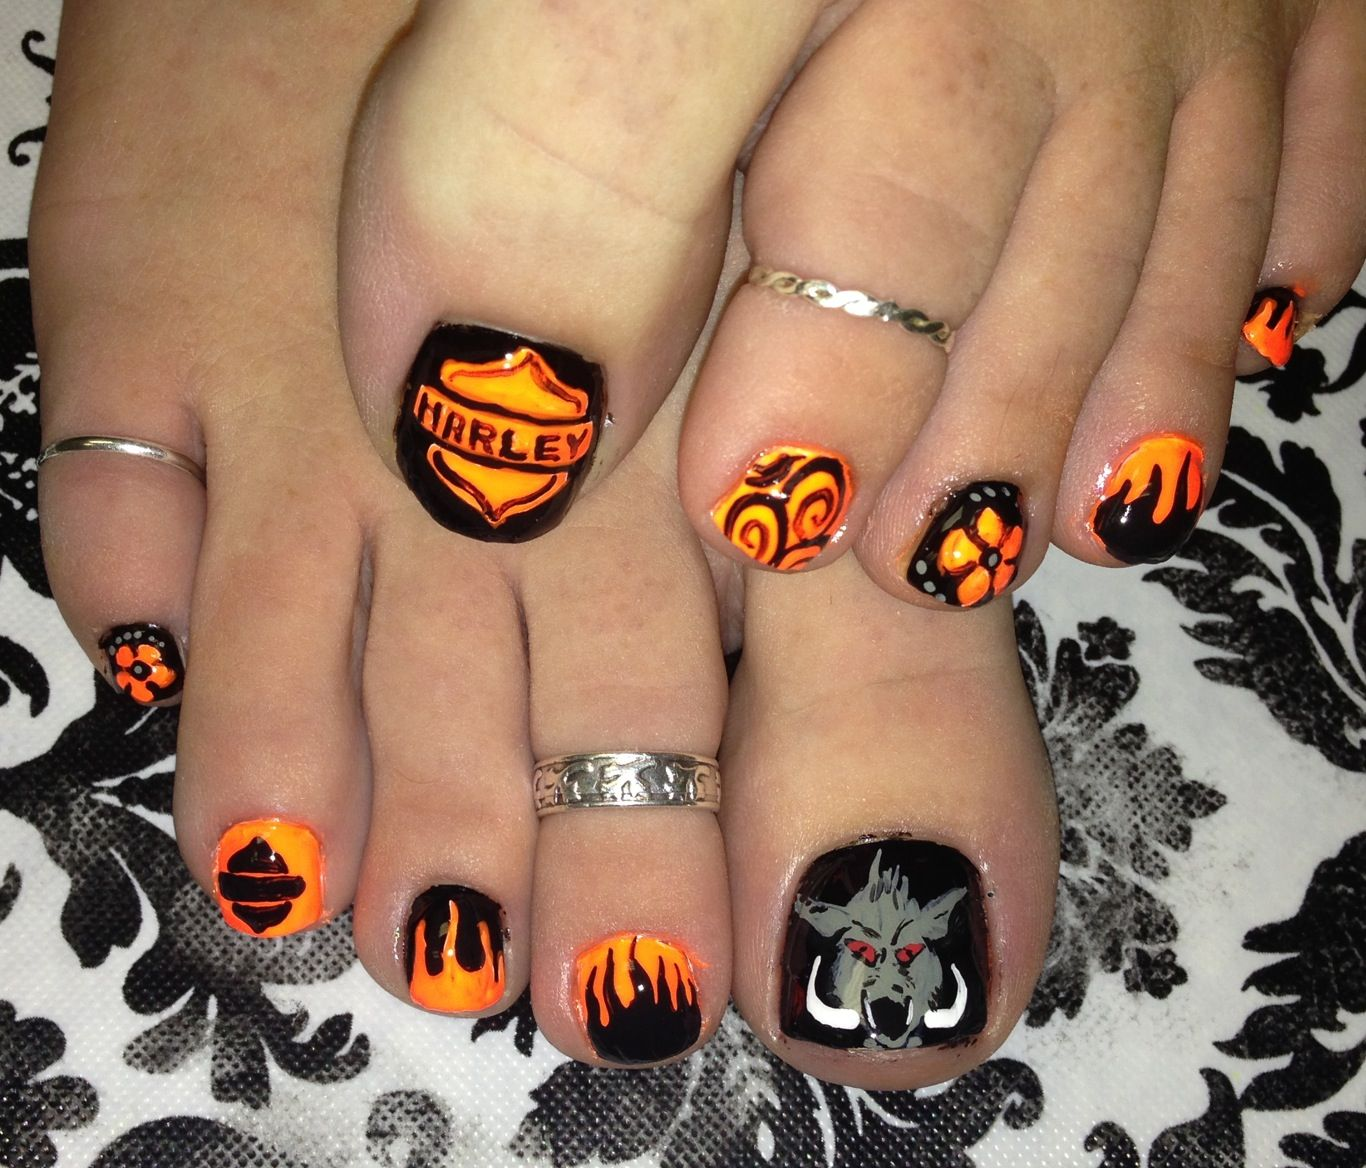 Harley Davidson nail art~ to be adapted for my fingers - 13 Ultra Cool Harley Davidson Nail Designs In 2018 Harley Davidson